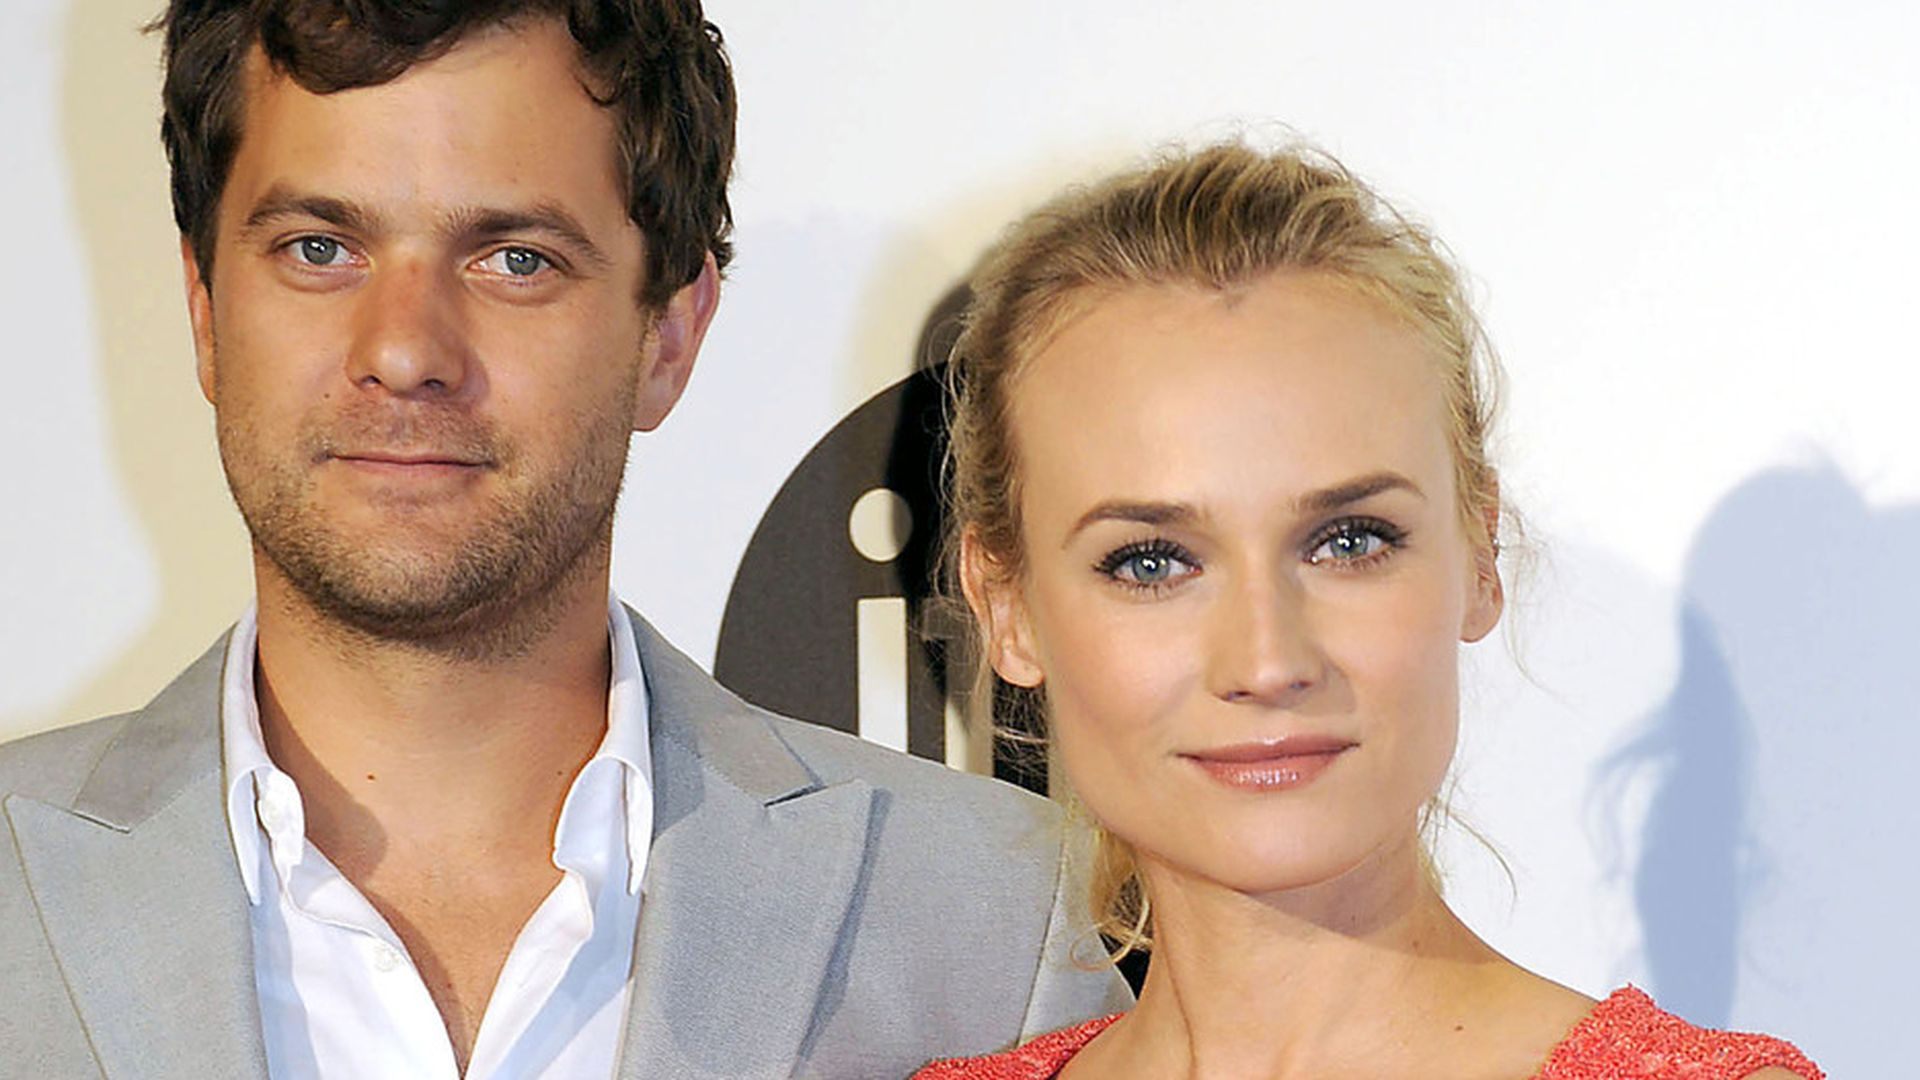 will joshua jackson diane kruger nicht heiraten. Black Bedroom Furniture Sets. Home Design Ideas